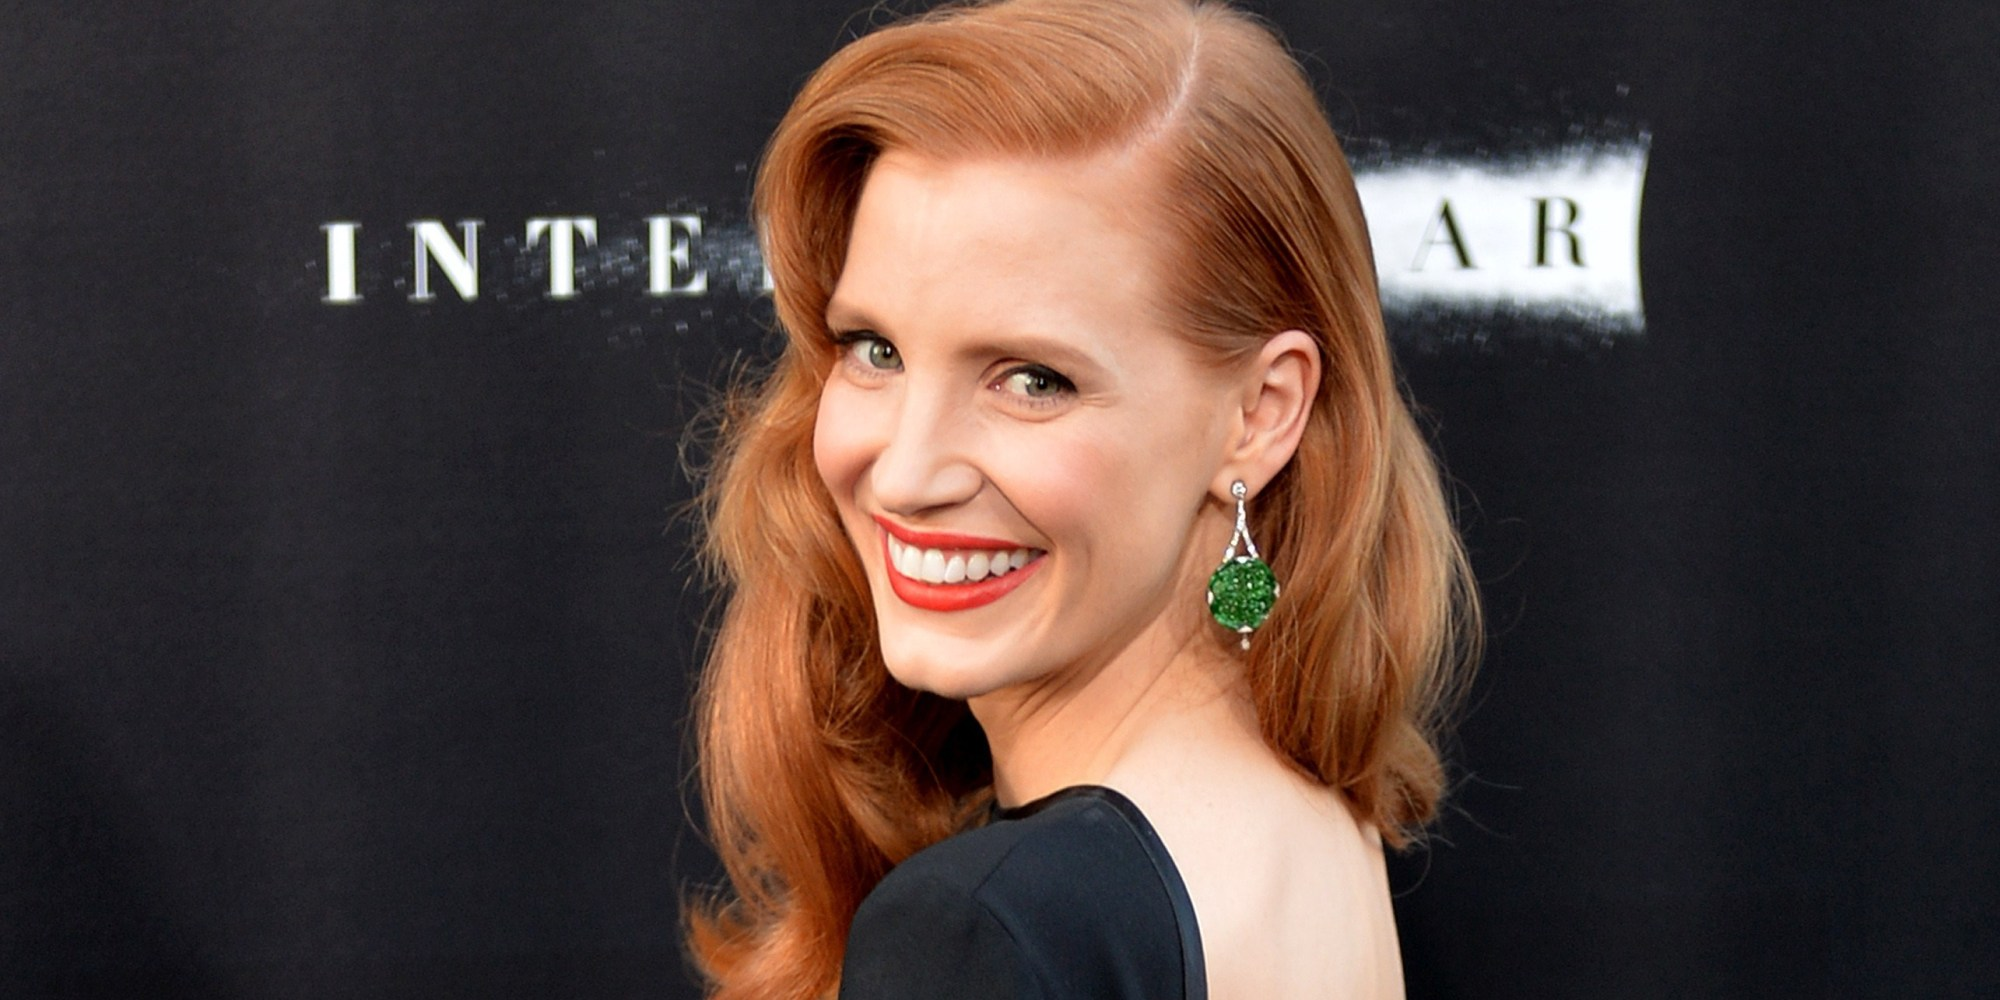 Actress Jessica Chastain arrives for the premiere of Paramount Picture's movie 'Interstellar' at the TCL Chinese Theatre in Hollywood, California on October 26, 2014 AFP PHOTO/Mark RALSTON (Photo credit should read MARK RALSTON/AFP/Getty Images)